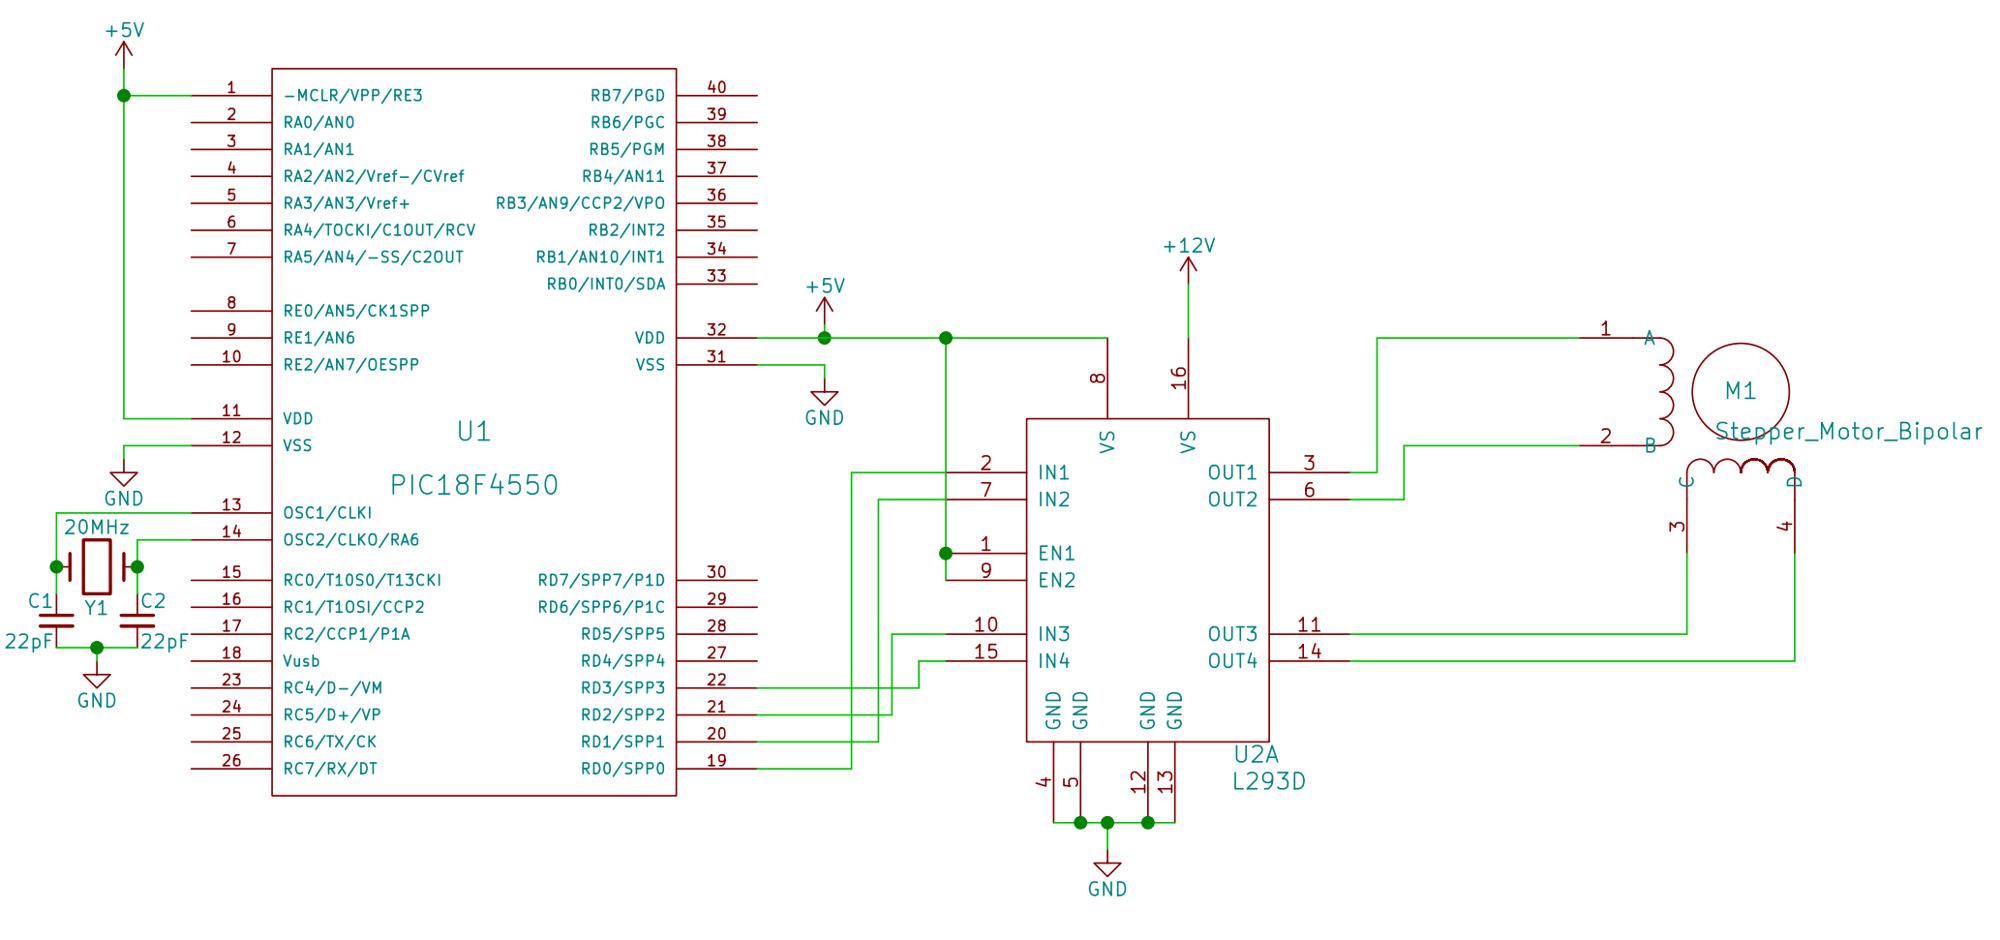 Unipolar Stepper Motor With Pic Microcontroller Using L293d Circuit Pin Diagram Interfacing Openlabpro Com Rh